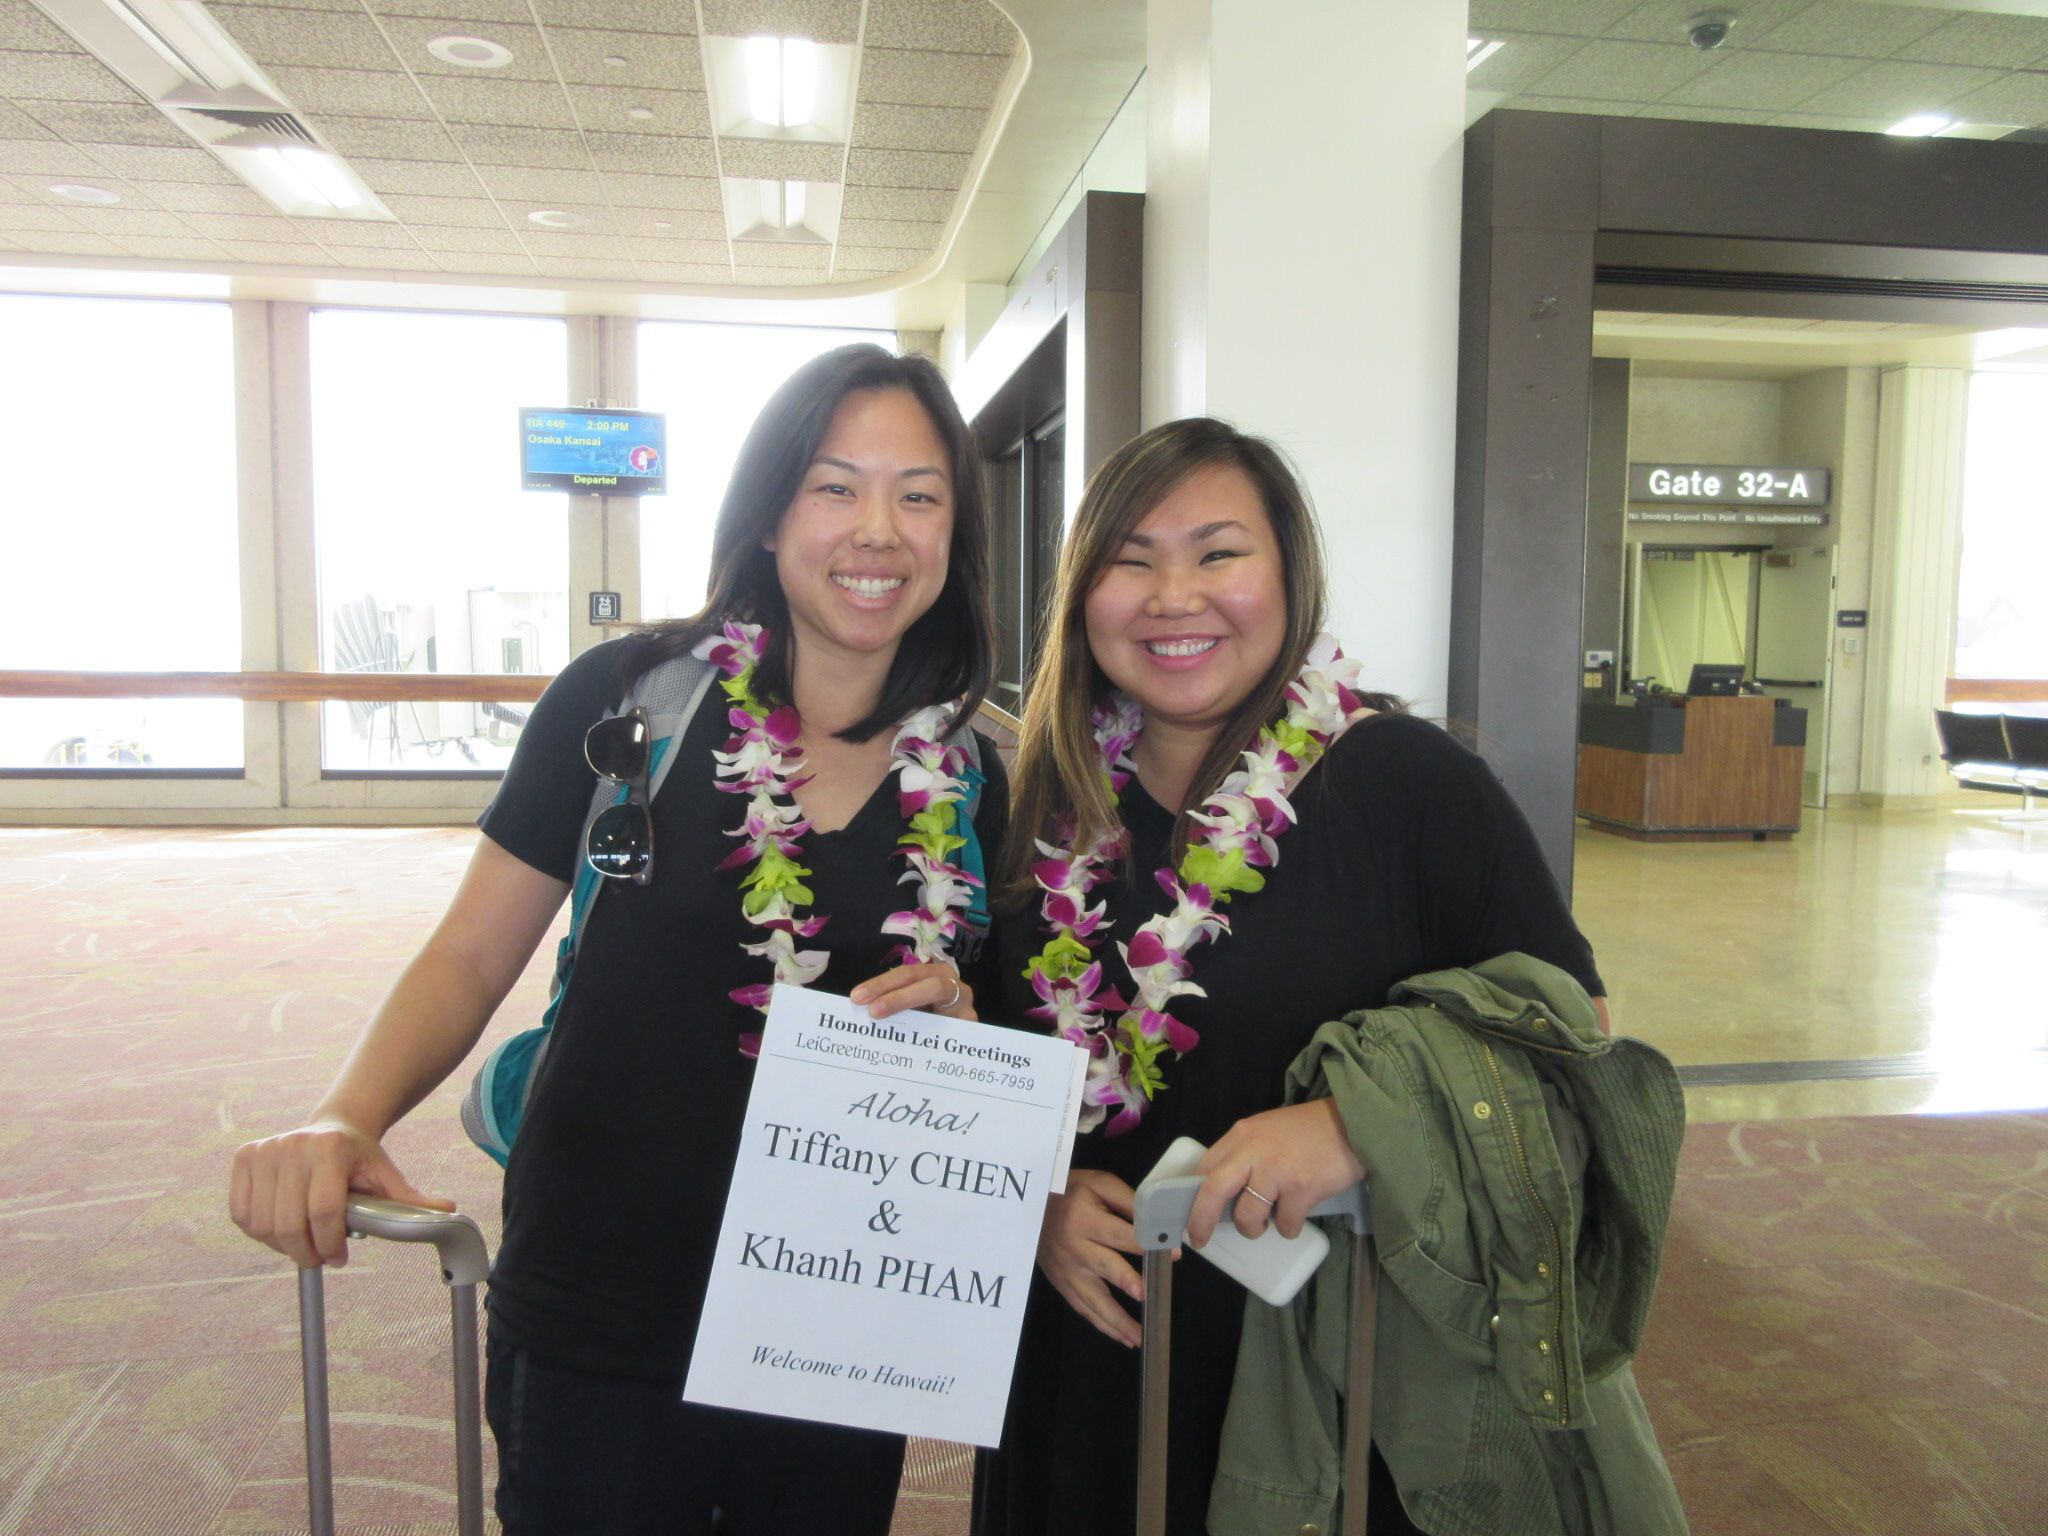 2815 Welcome To Hawaii Tiffany And Khanh They Traveled All The